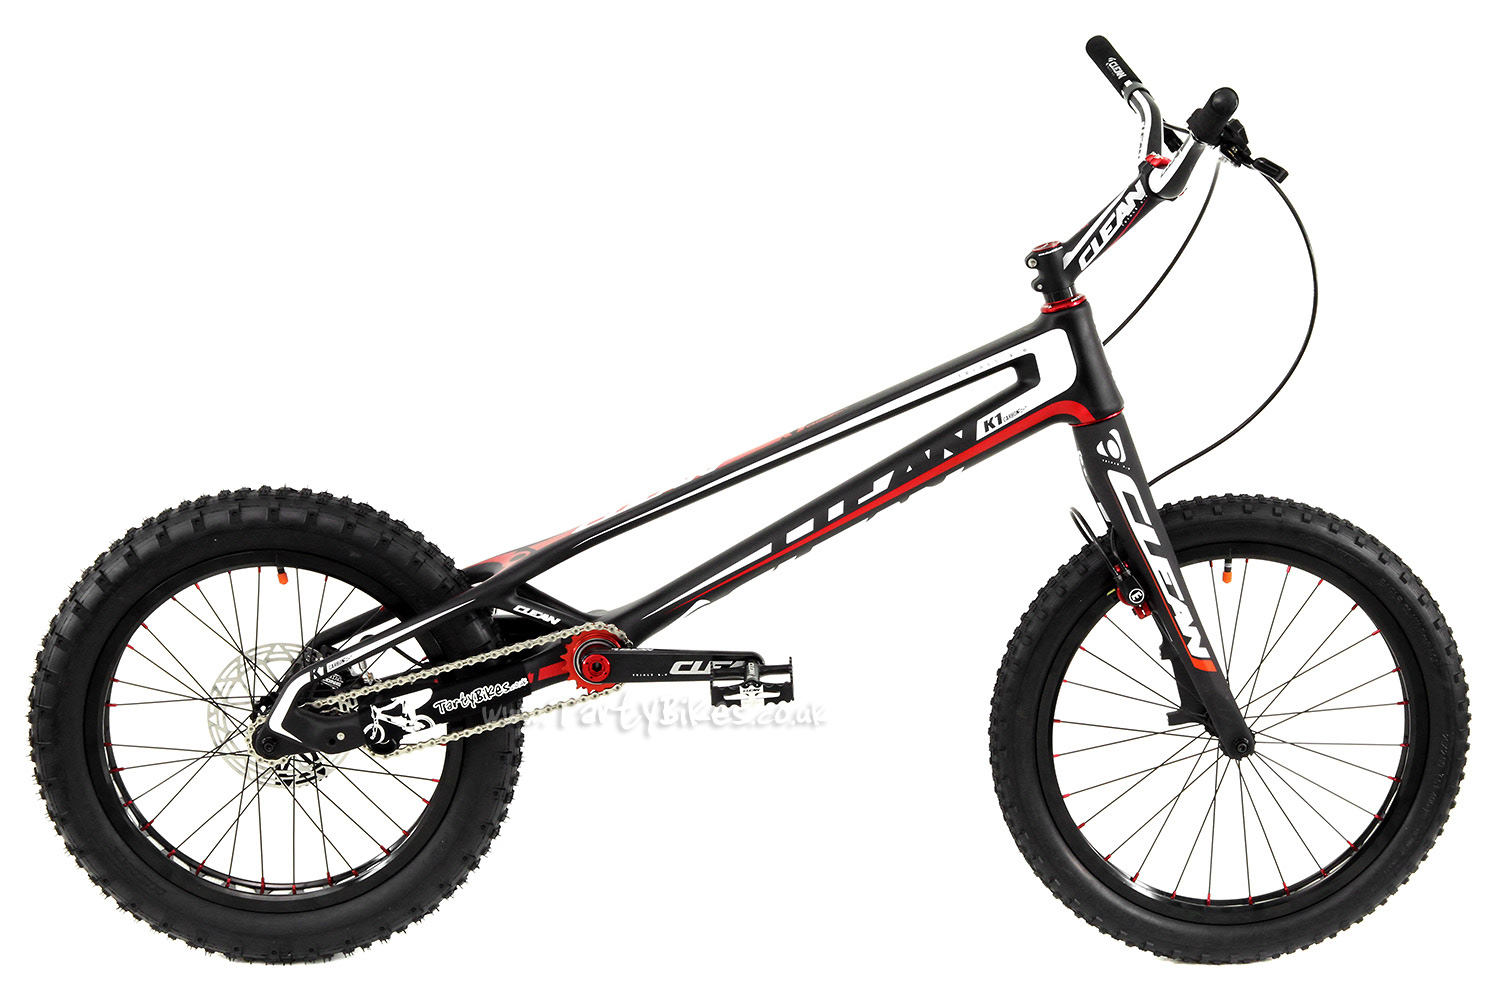 Trials Bikes At Tartybikes The World S Leading Online Bike